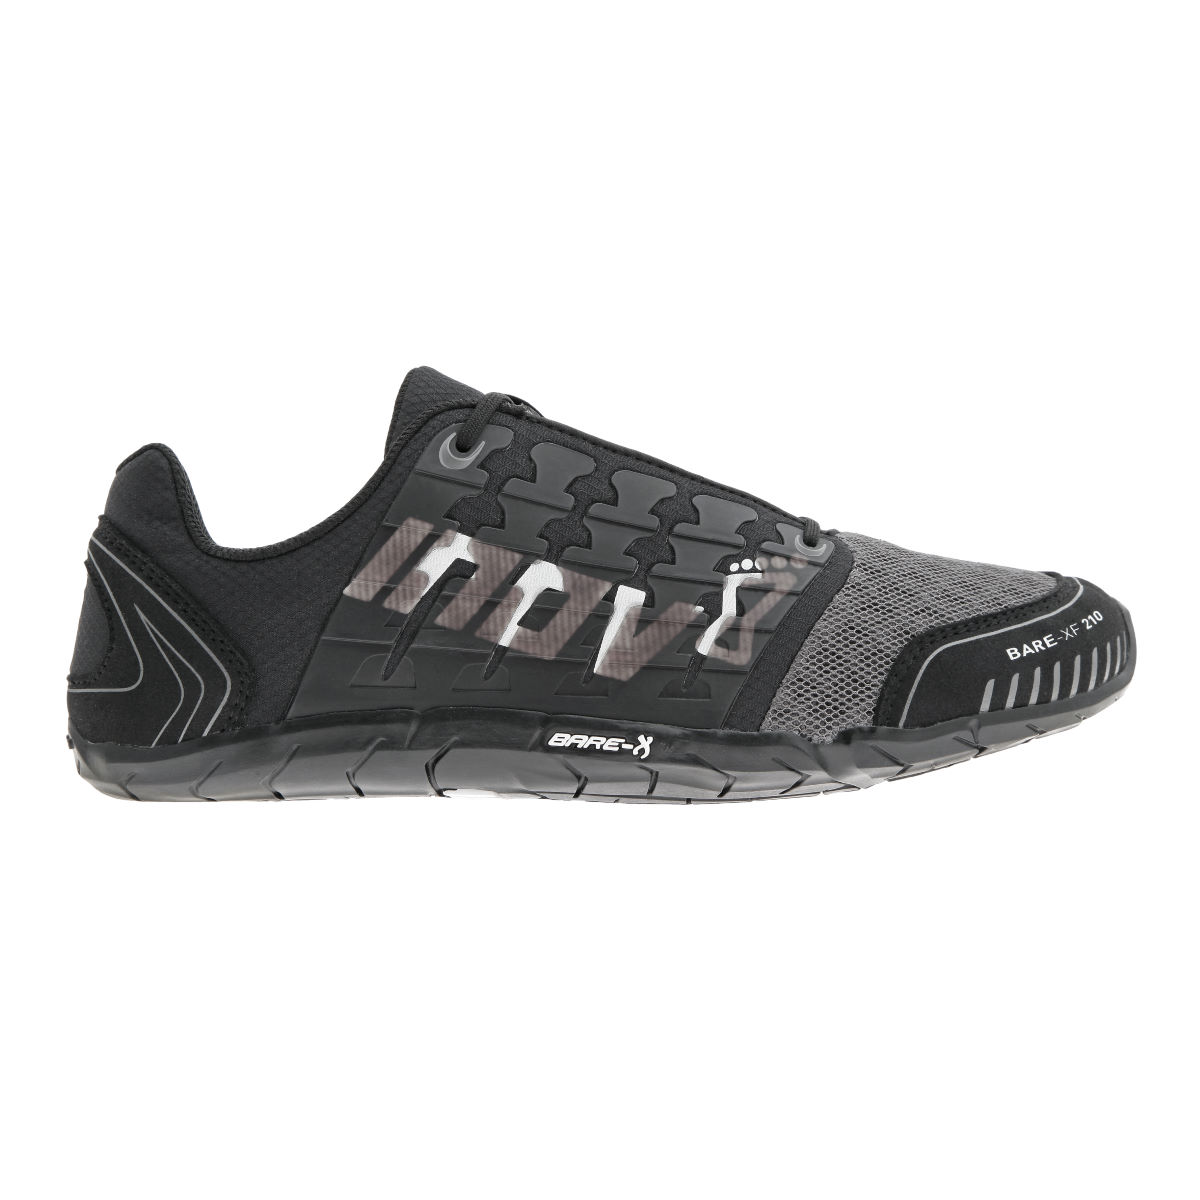 Chaussures Inov-8 Bare-XF 210 (AH16) - 4 UK Black/Grey/White Chaussures d'entraînement